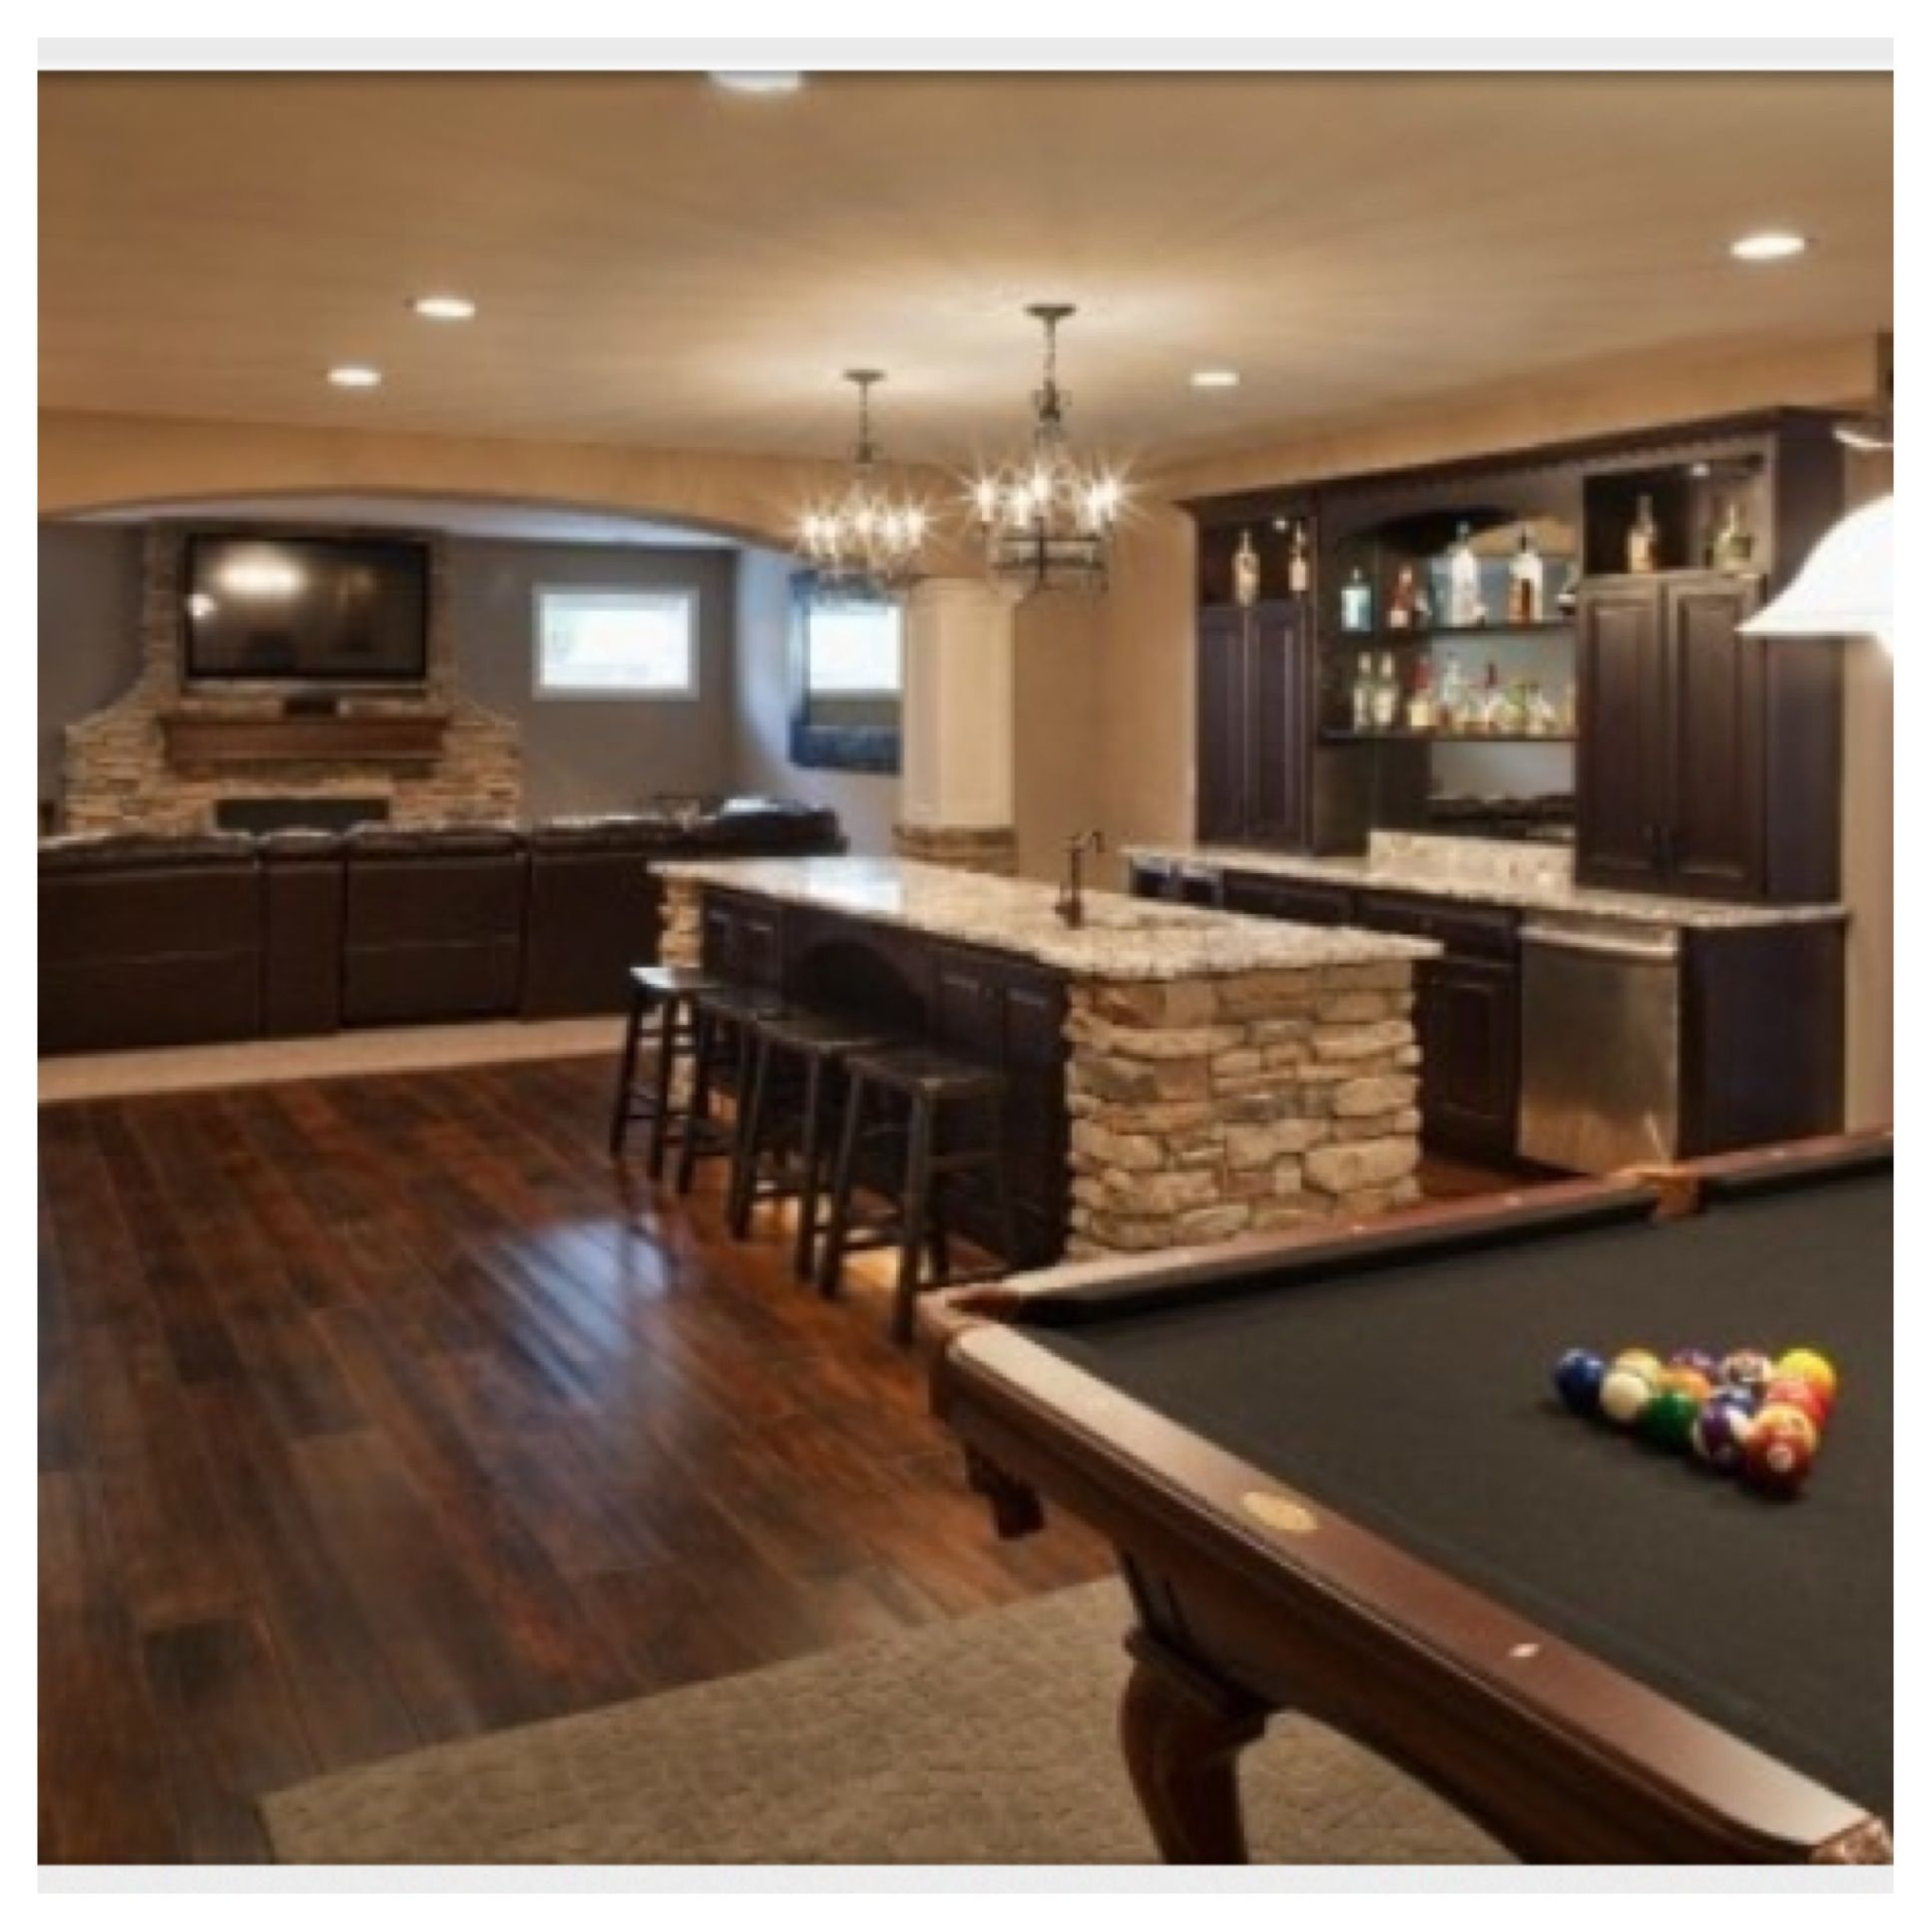 Basement | Dream House | Pinterest